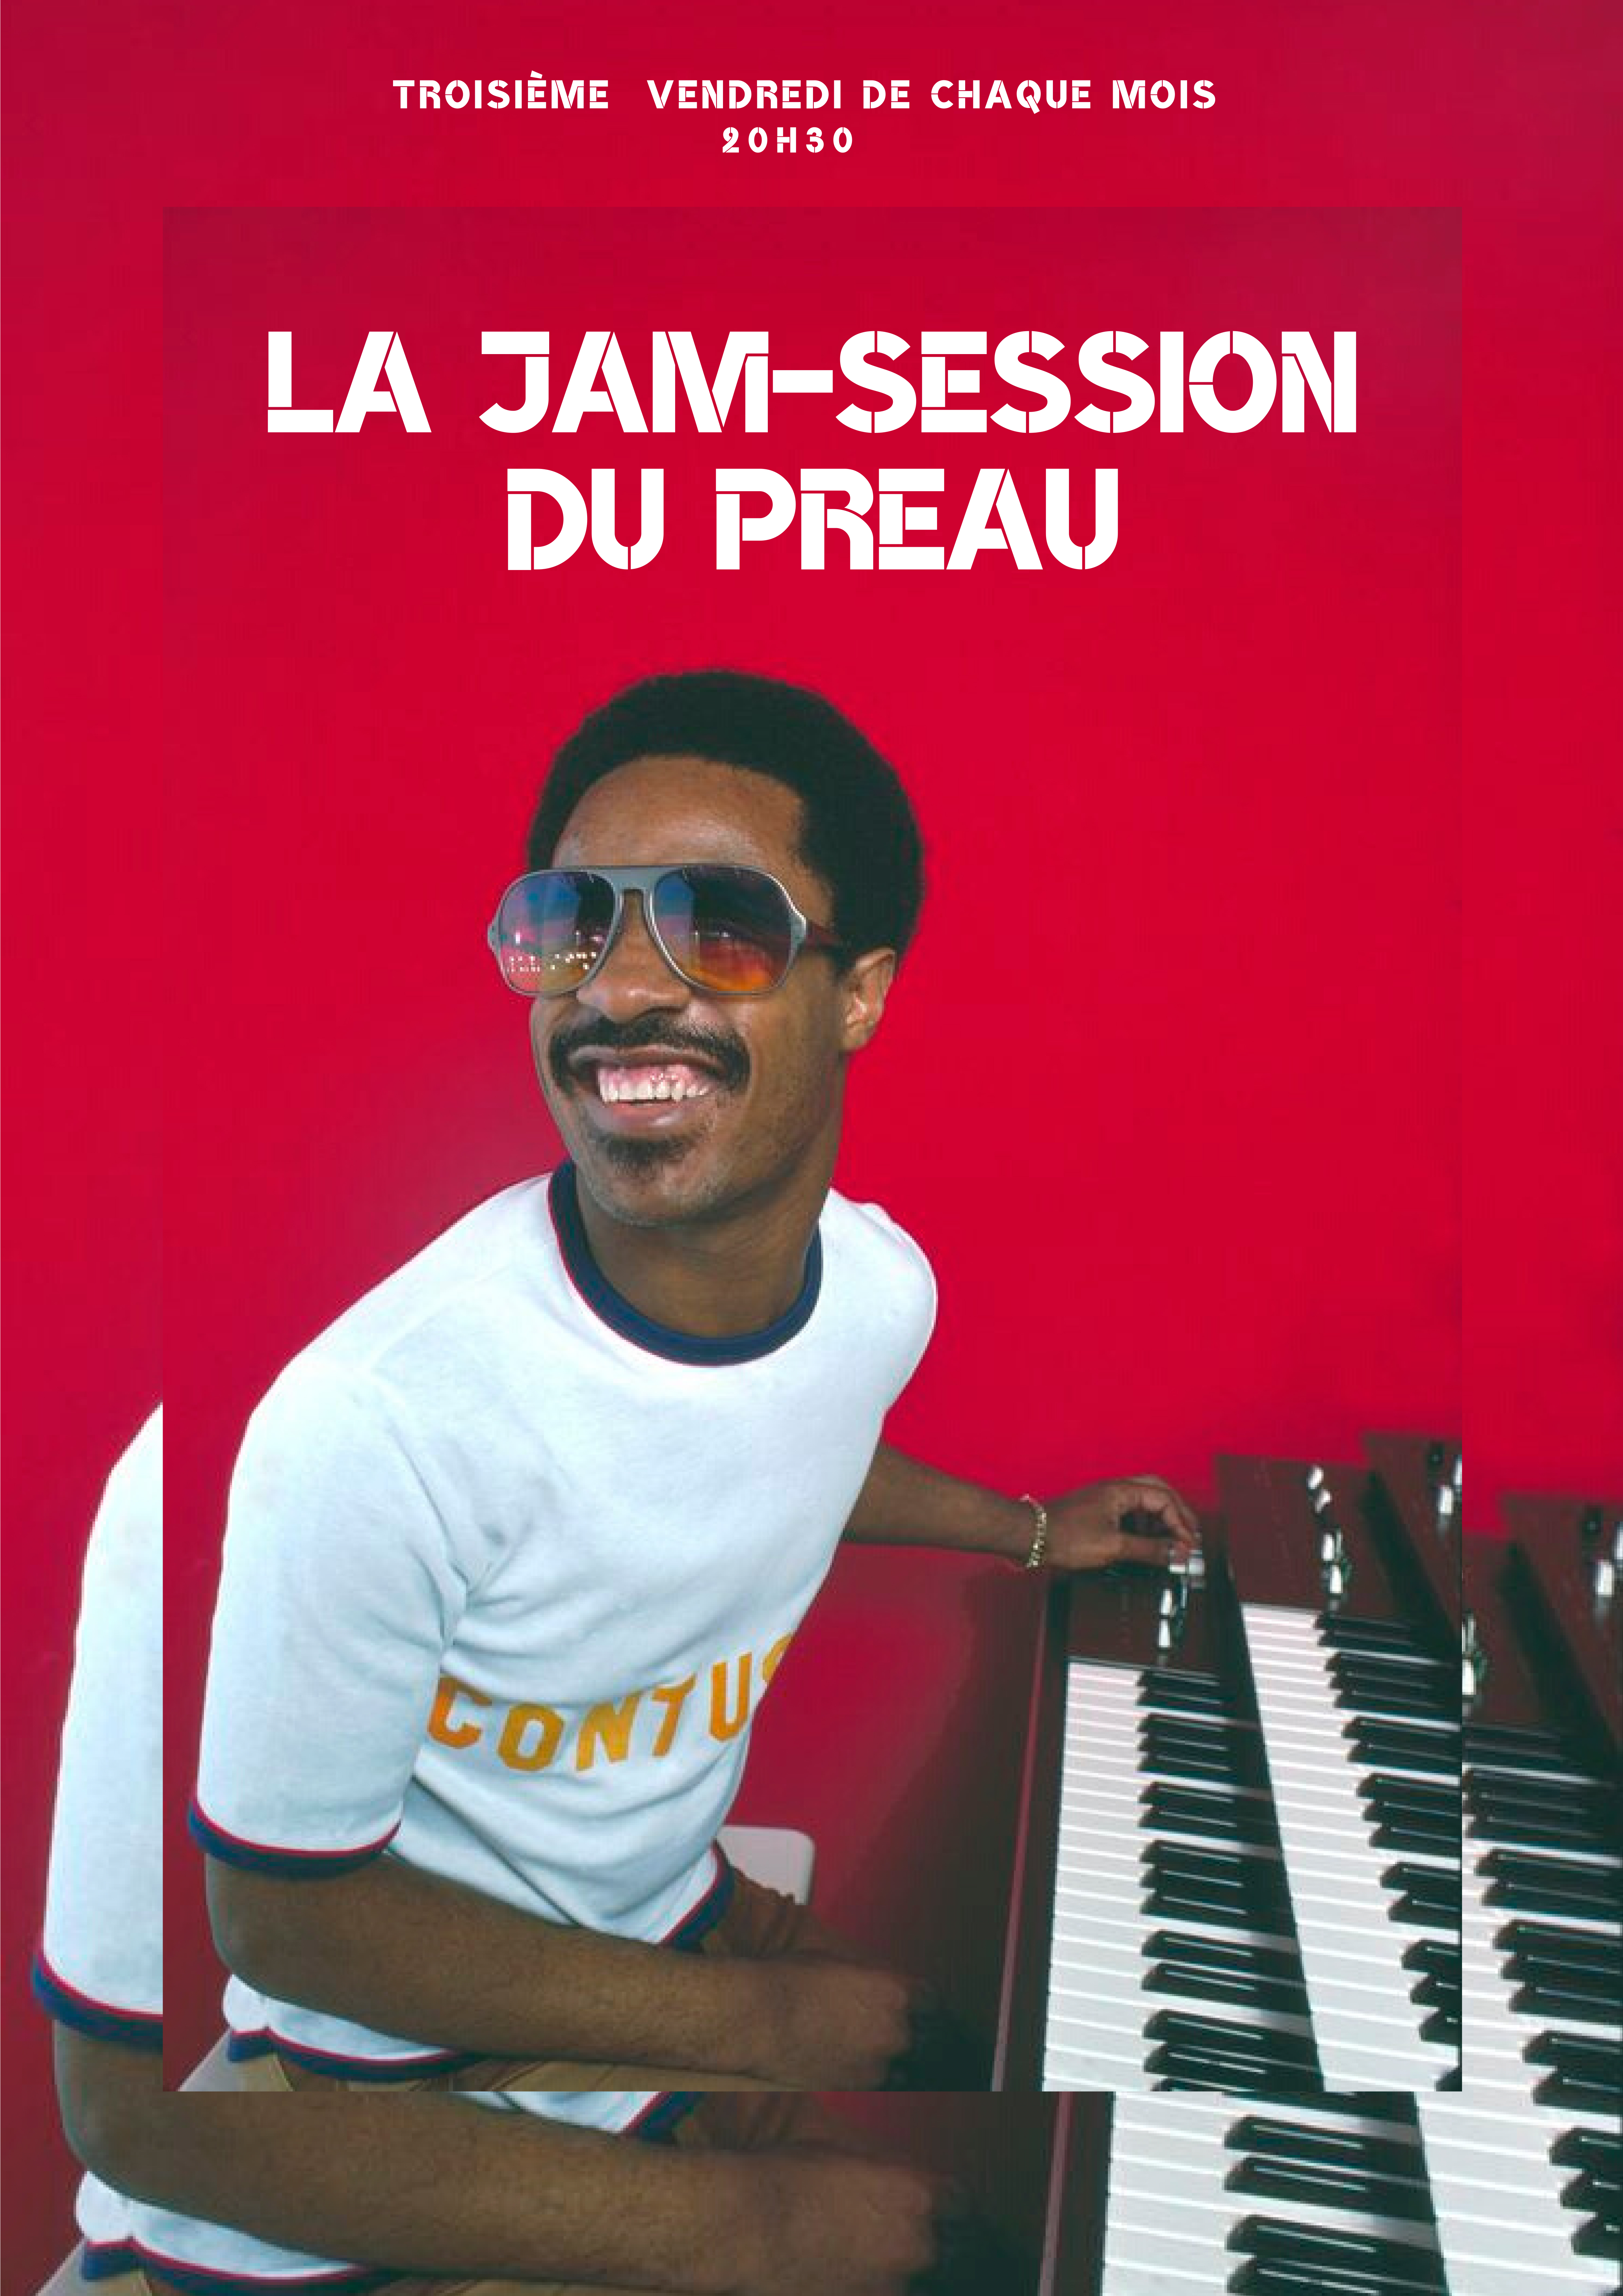 Jam-Session du Préau